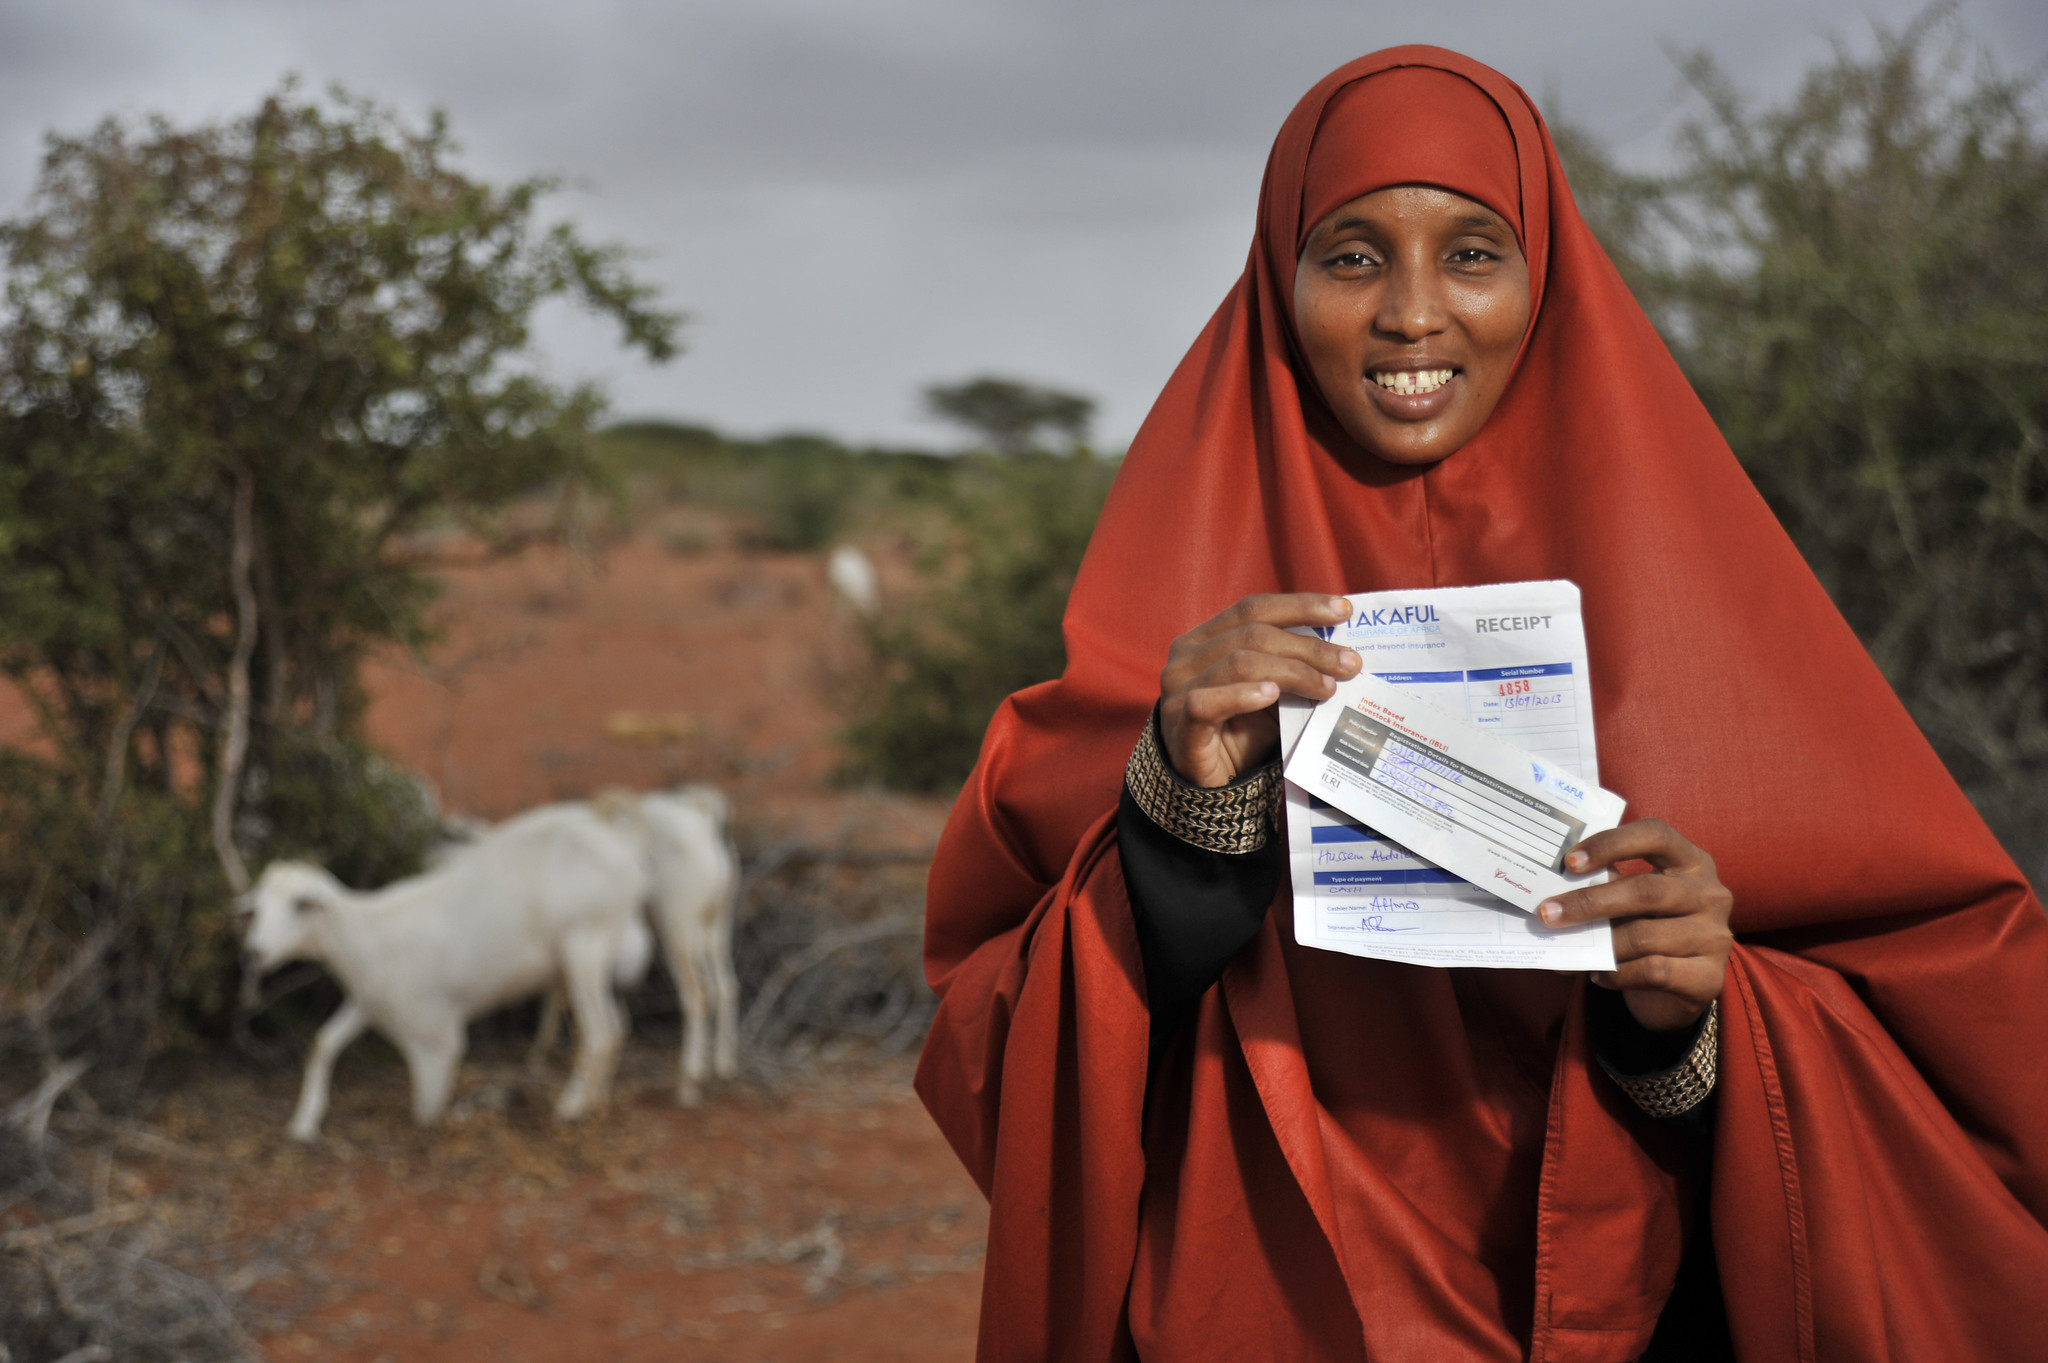 Beneficiary of Takaful insurance payout in Wajir, northern Kenya